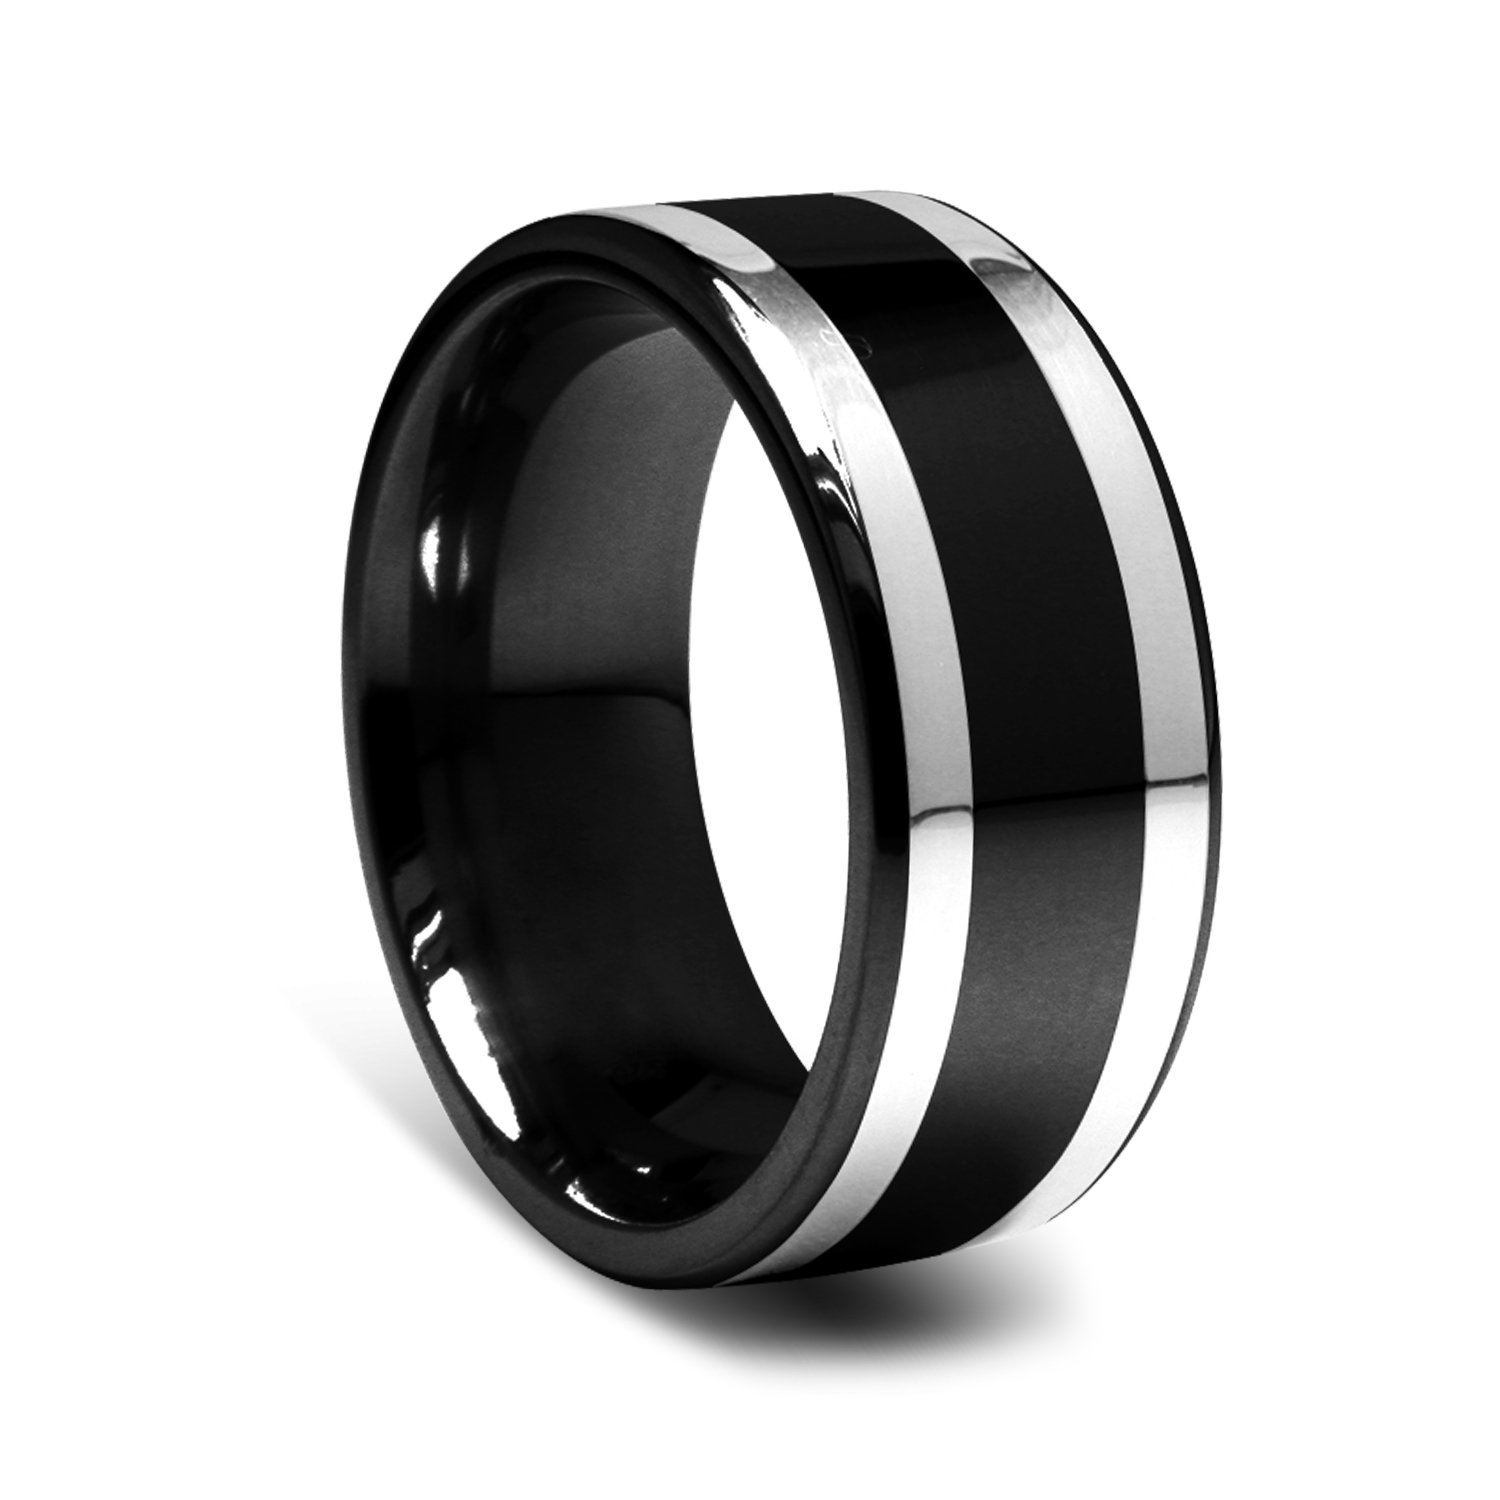 cz titanium wedding tir jewelry resin with linked mens inlay bling fj bands ring band